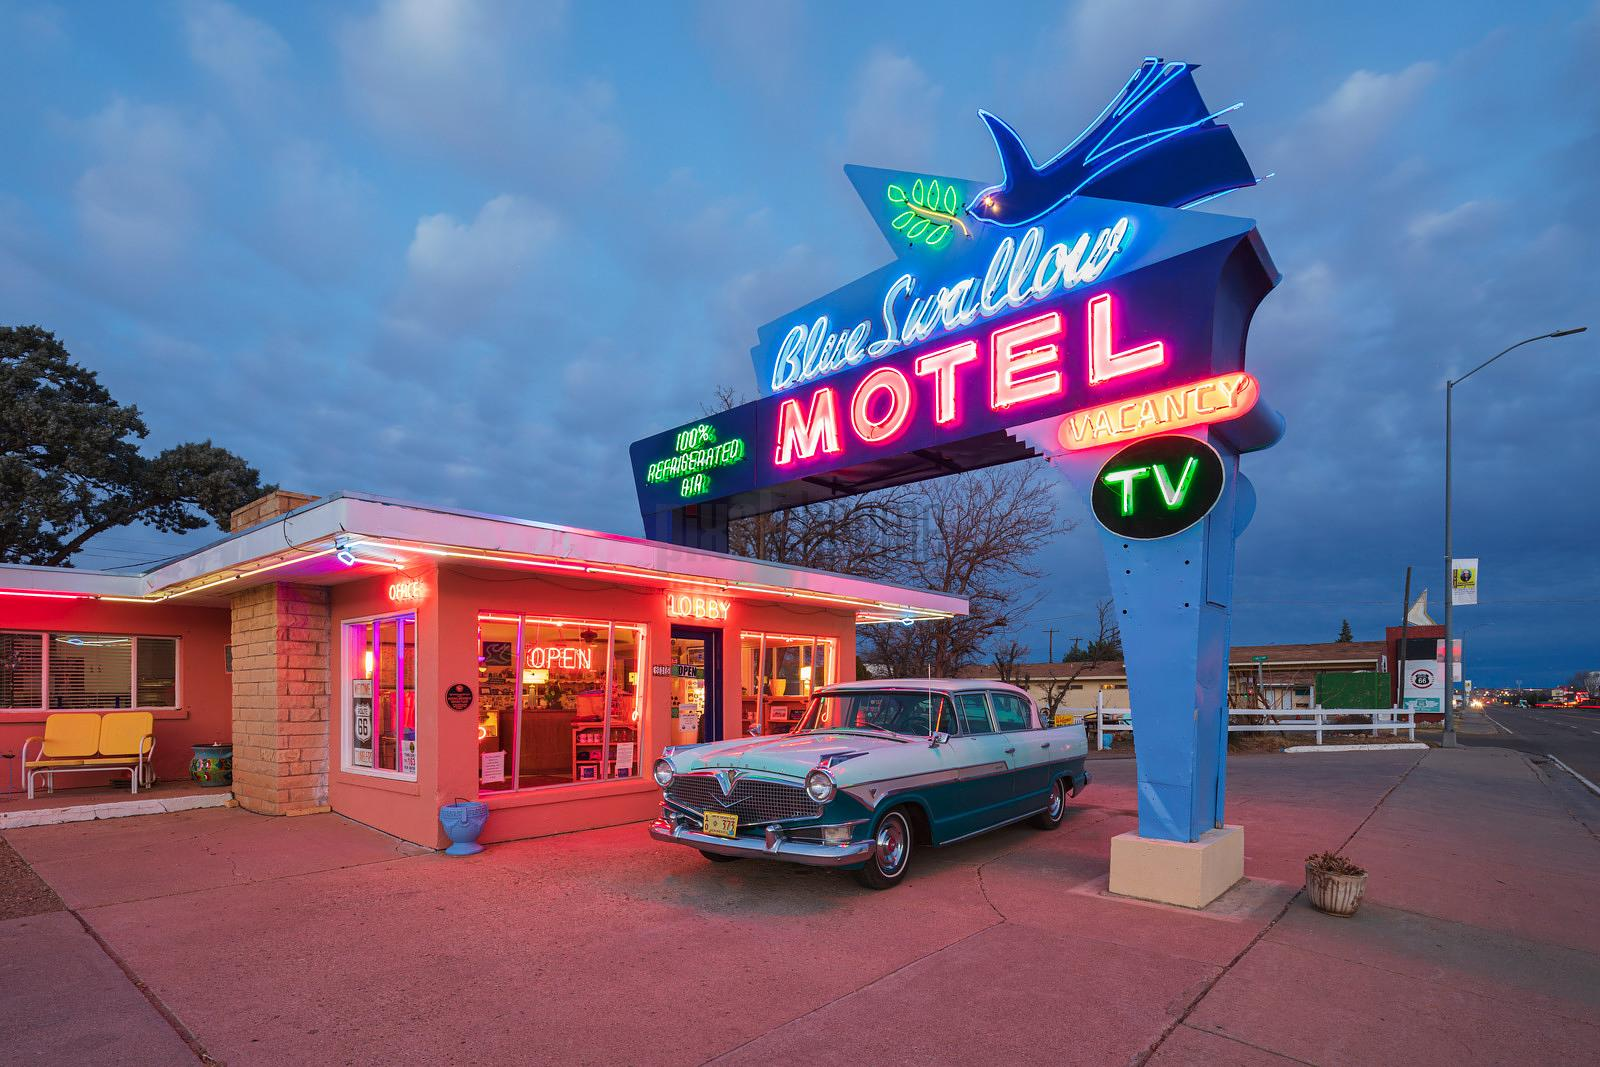 Blue Swallow Motel at Dusk